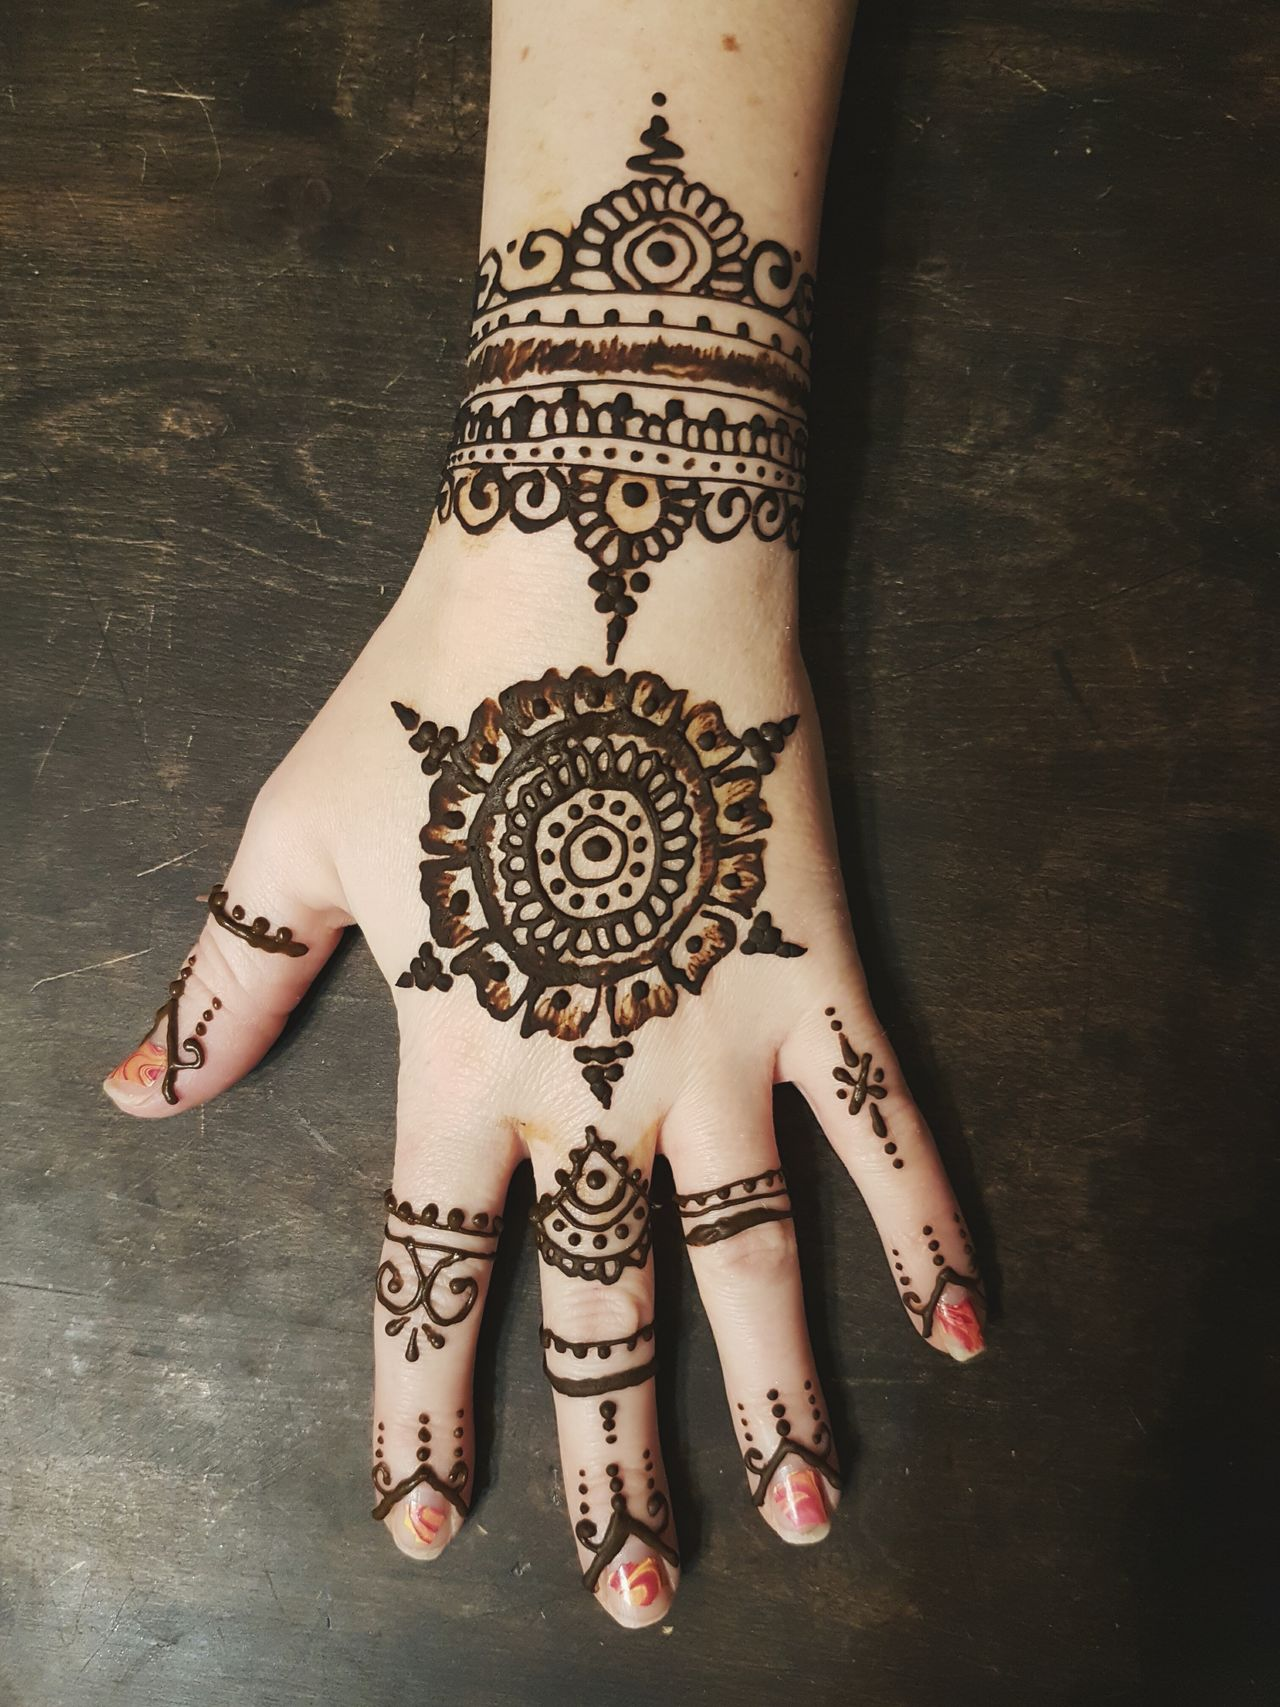 Human Body Part Tattoo Human Hand MehndiDesigns My Work Mehndi Culture Human Finger MehndiDesign Punjabistyle Human Skin MehndiTattoo Henna Tattoo MehndiArtist MehndiTattoos Saskatchewan Body Adornment